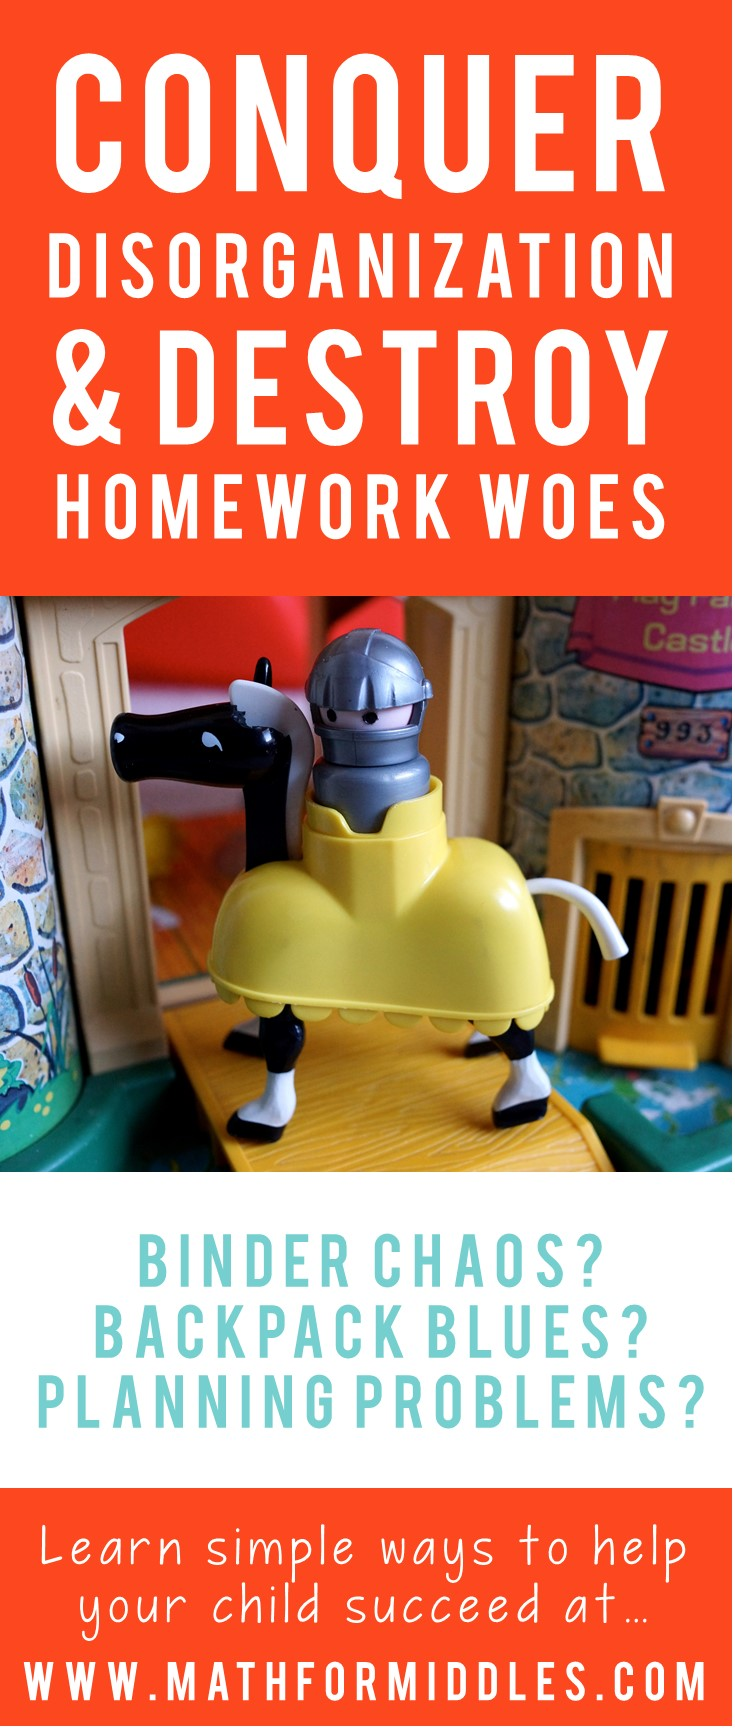 Conquer Disorganization and Homework Angst This Year [009]